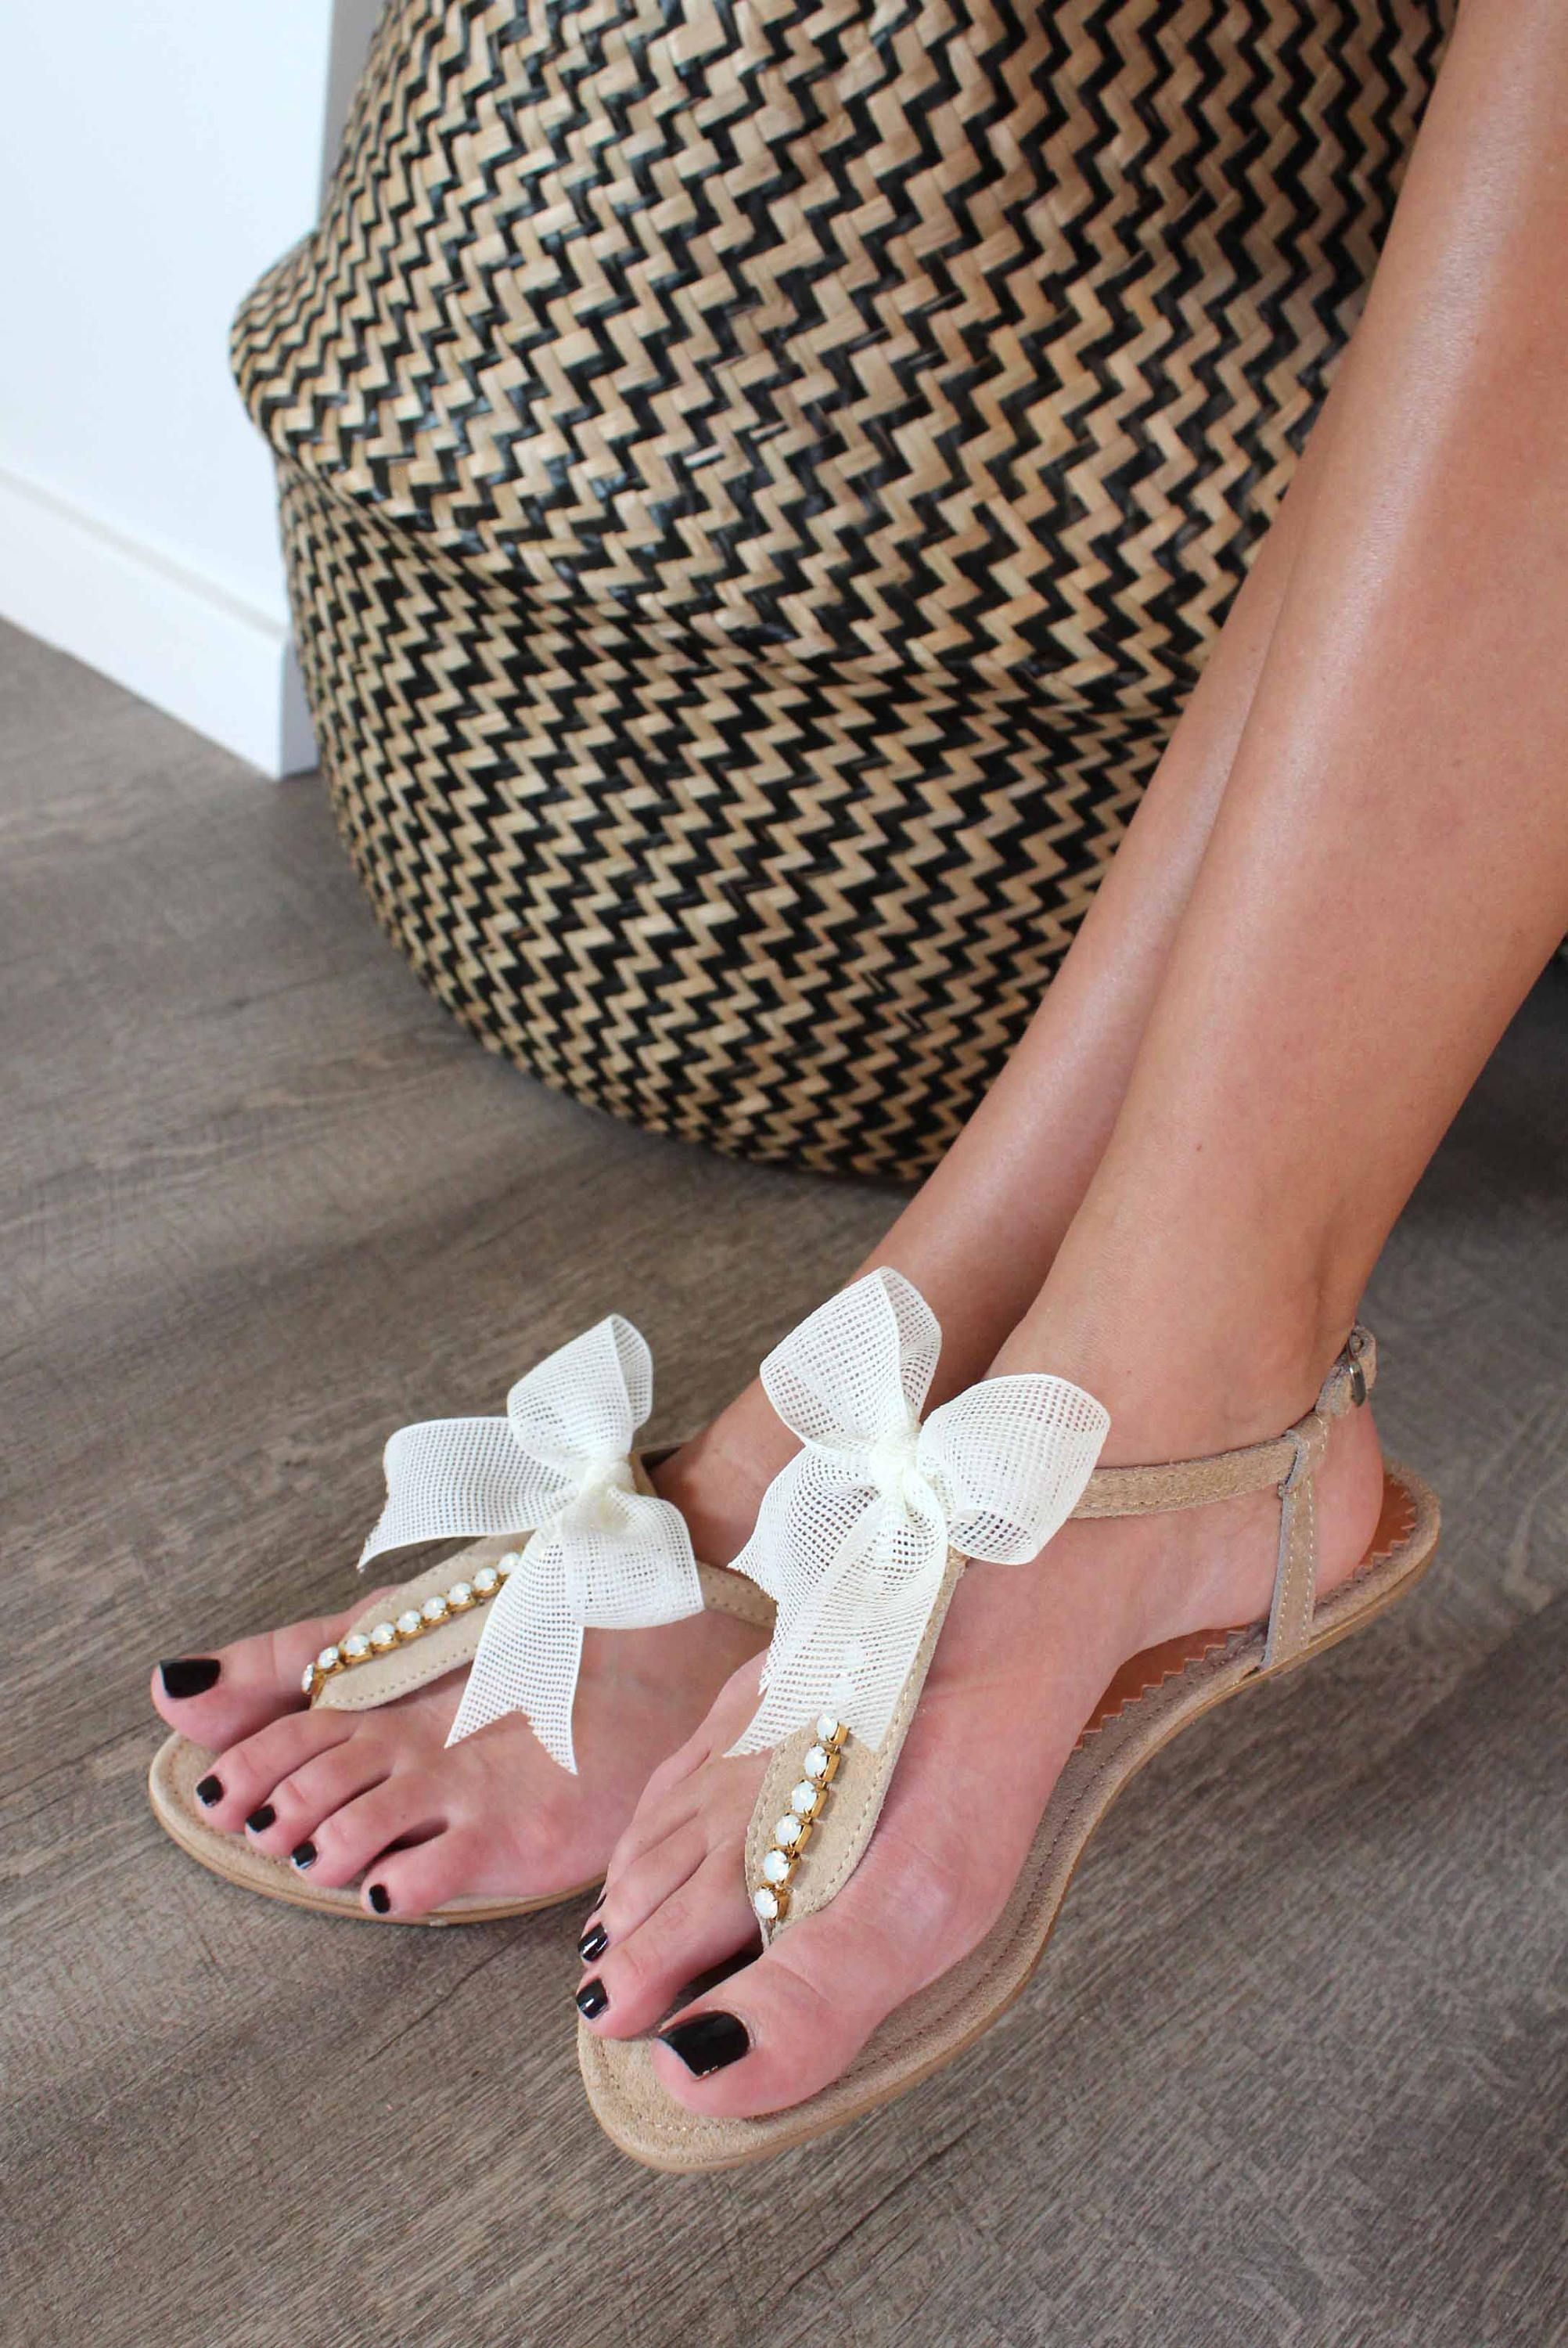 7154b988fada58 Leather Sandals. Bridal Sandals. Bridesmaid Sandals. Wedding Gift. Gift for  her. Bridesmaids sandals. Beach Wedding by lizaslittlethings on Etsy